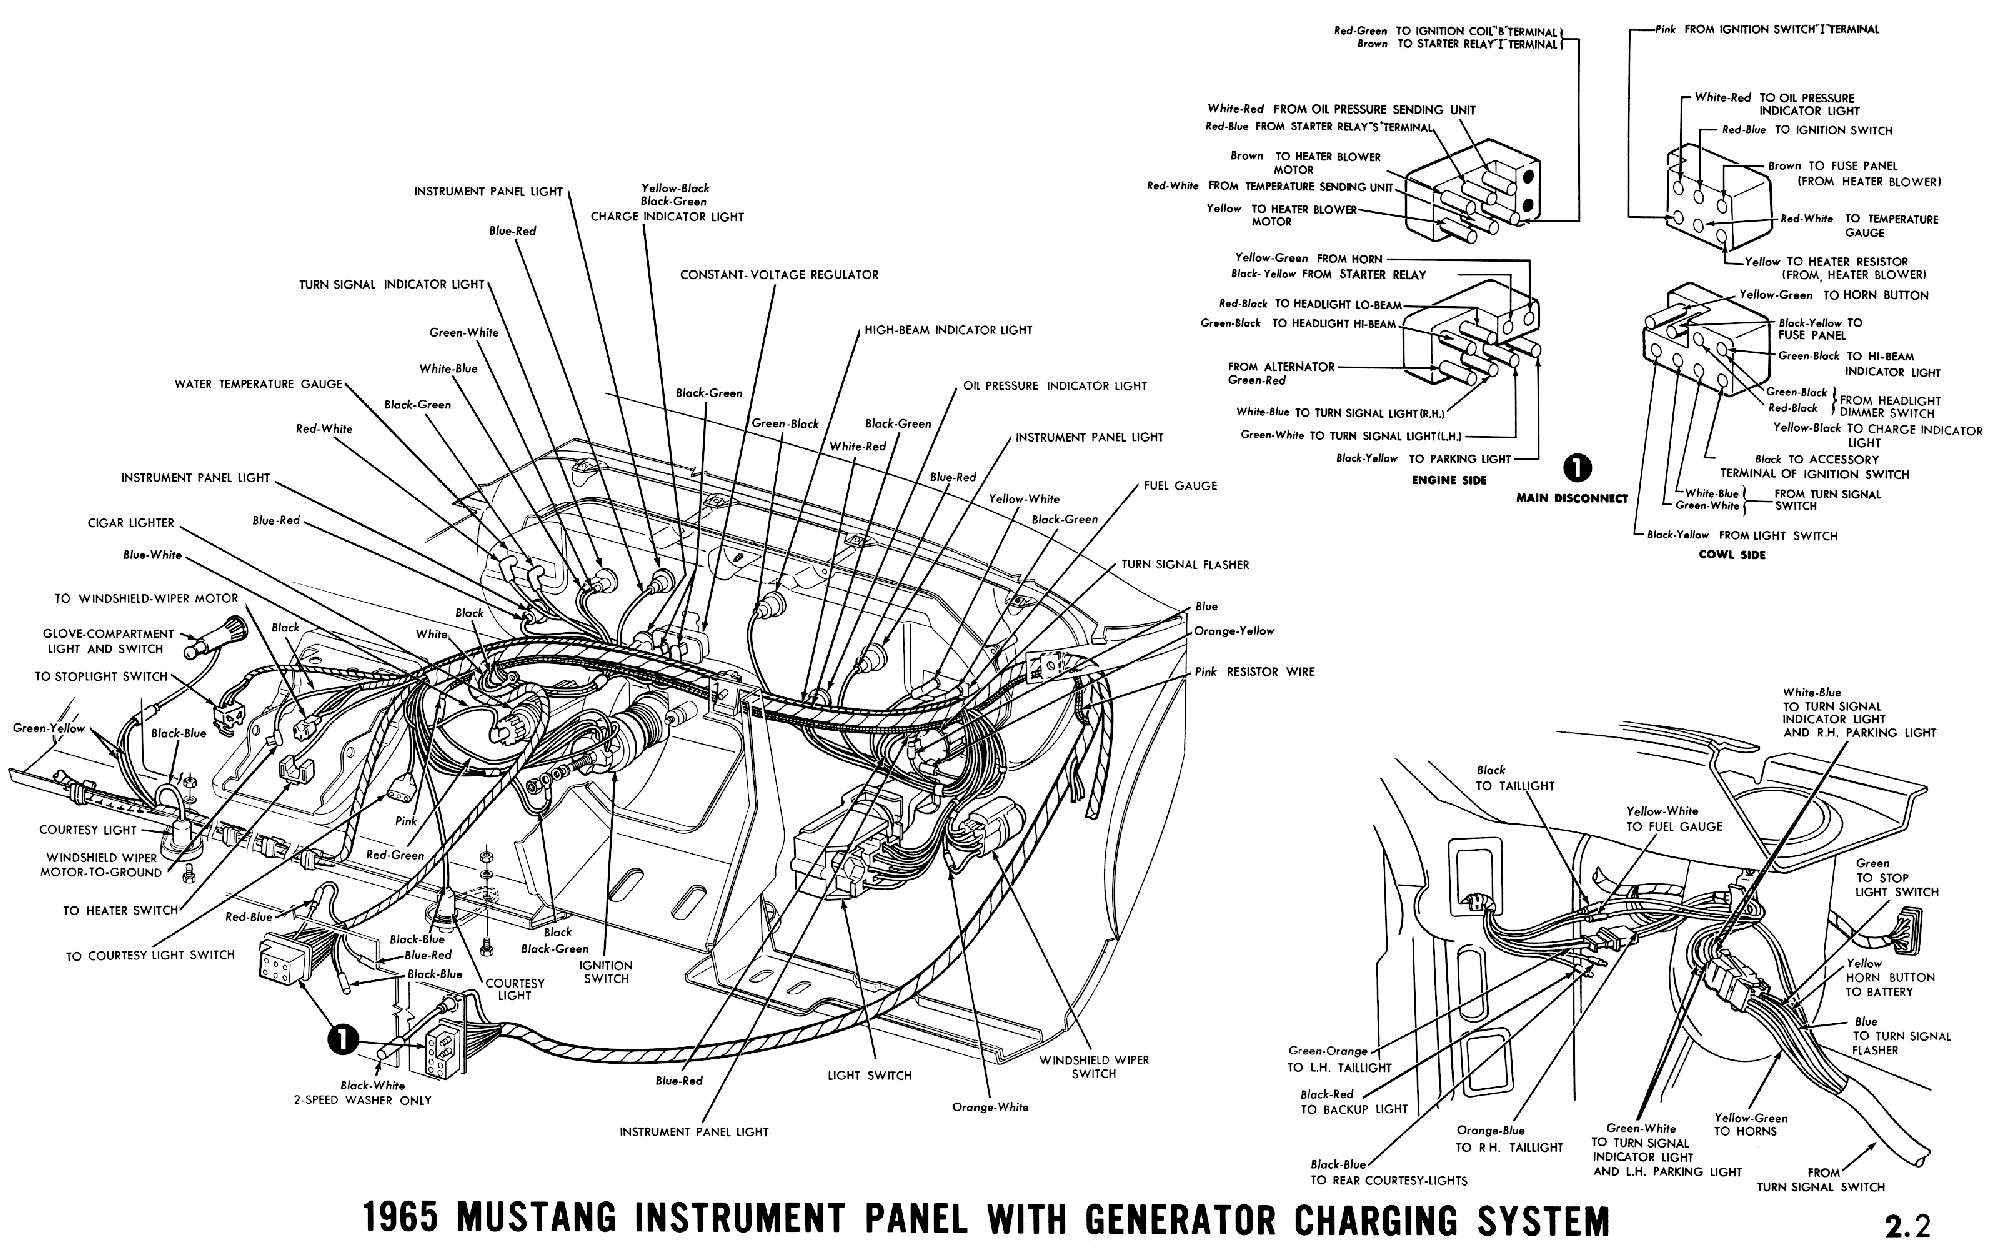 65 Mustang Wiring Diagram Alt Books Of 1967 F 100 240 1965 Diagrams Average Joe Restoration Rh Averagejoerestoration Com